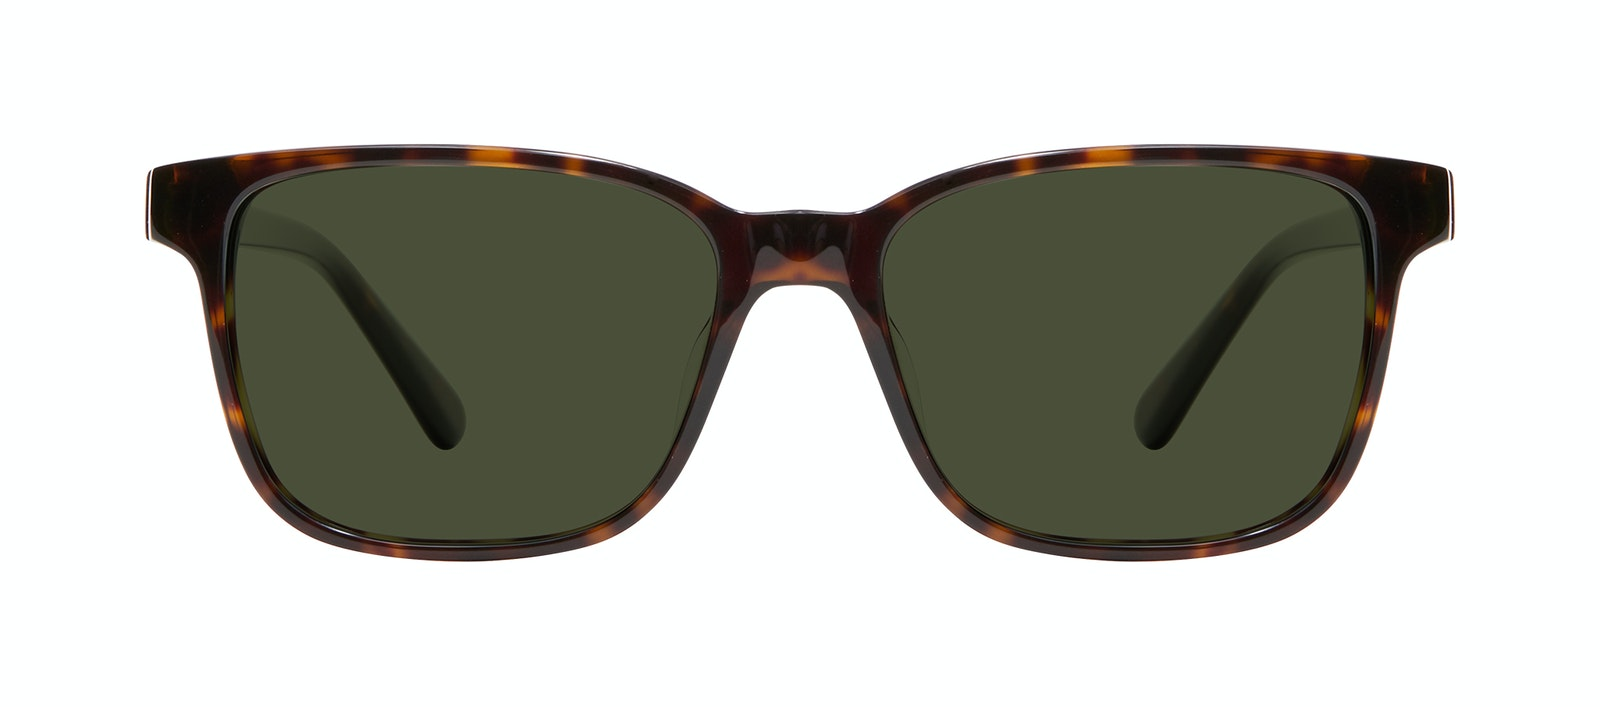 Affordable Fashion Glasses Square Sunglasses Men Risk Tortoise Front